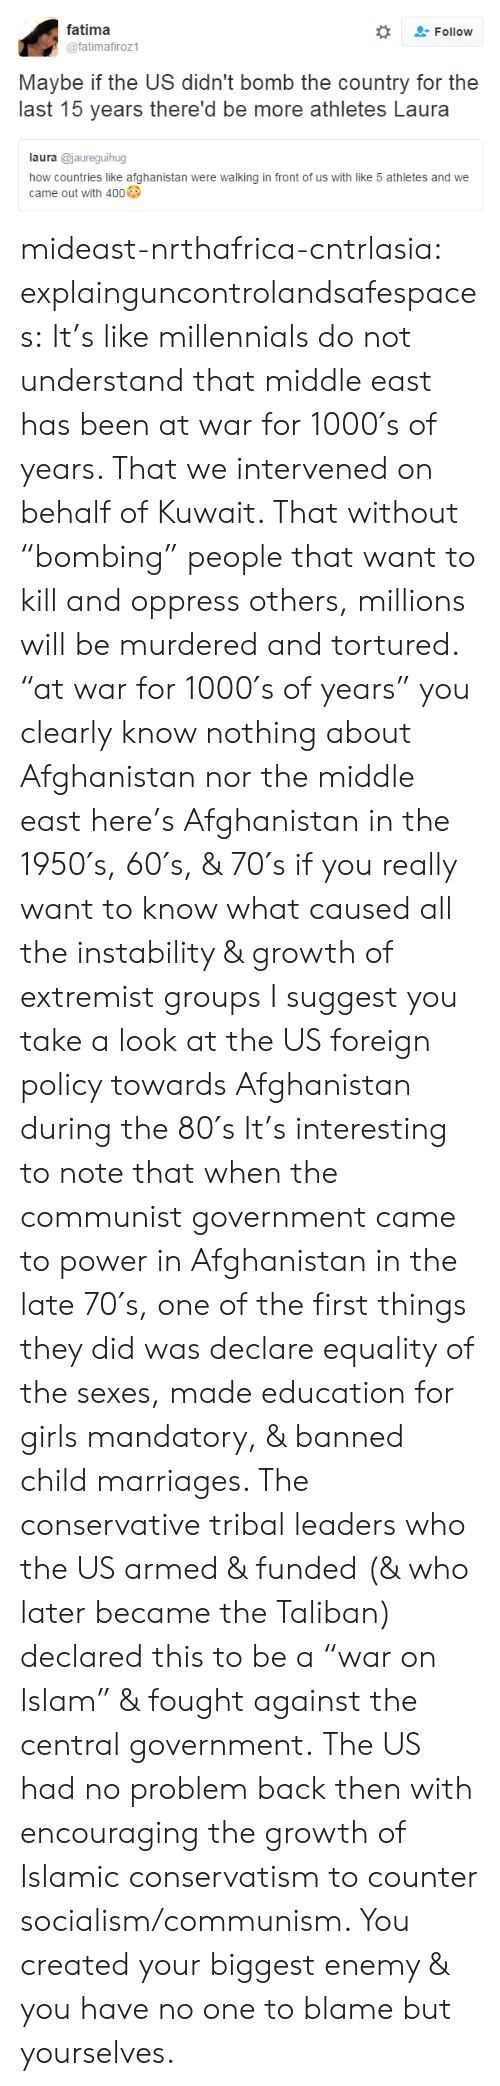 """Conservatism: fatima  @fatimafiroz1  Follow  Maybe if the US didn't bomb the country for the  last 15 years there'd be more athletes Laura  laura @jaureguihug  how countries like afghanistan were walking in front of us with like 5 athletes and we  came out with 400 mideast-nrthafrica-cntrlasia:  explainguncontrolandsafespaces:  It's like millennials do not understand that middle east has been at war for 1000′s of years. That we intervened on behalf of Kuwait. That without """"bombing"""" people that want to kill and oppress others, millions will be murdered and tortured.  """"at war for 1000′s of years"""" you clearly know nothing about Afghanistan nor the middle east here's Afghanistan in the 1950′s, 60′s, & 70′s if you really want to know what caused all the instability & growth of extremist groups I suggest you take a look at the US foreign policy towards Afghanistan during the 80′s It's interesting to note that when the communist government came to power in Afghanistan in the late 70′s, one of the first things they did was declare equality of the sexes, made education for girls mandatory, & banned child marriages. The conservative tribal leaders who the US armed & funded (& who later became the Taliban) declared this to be a """"war on Islam"""" & fought against the central government. The US had no problem back then with encouraging the growth of Islamic conservatism to counter socialism/communism. You created your biggest enemy & you have no one to blame but yourselves."""